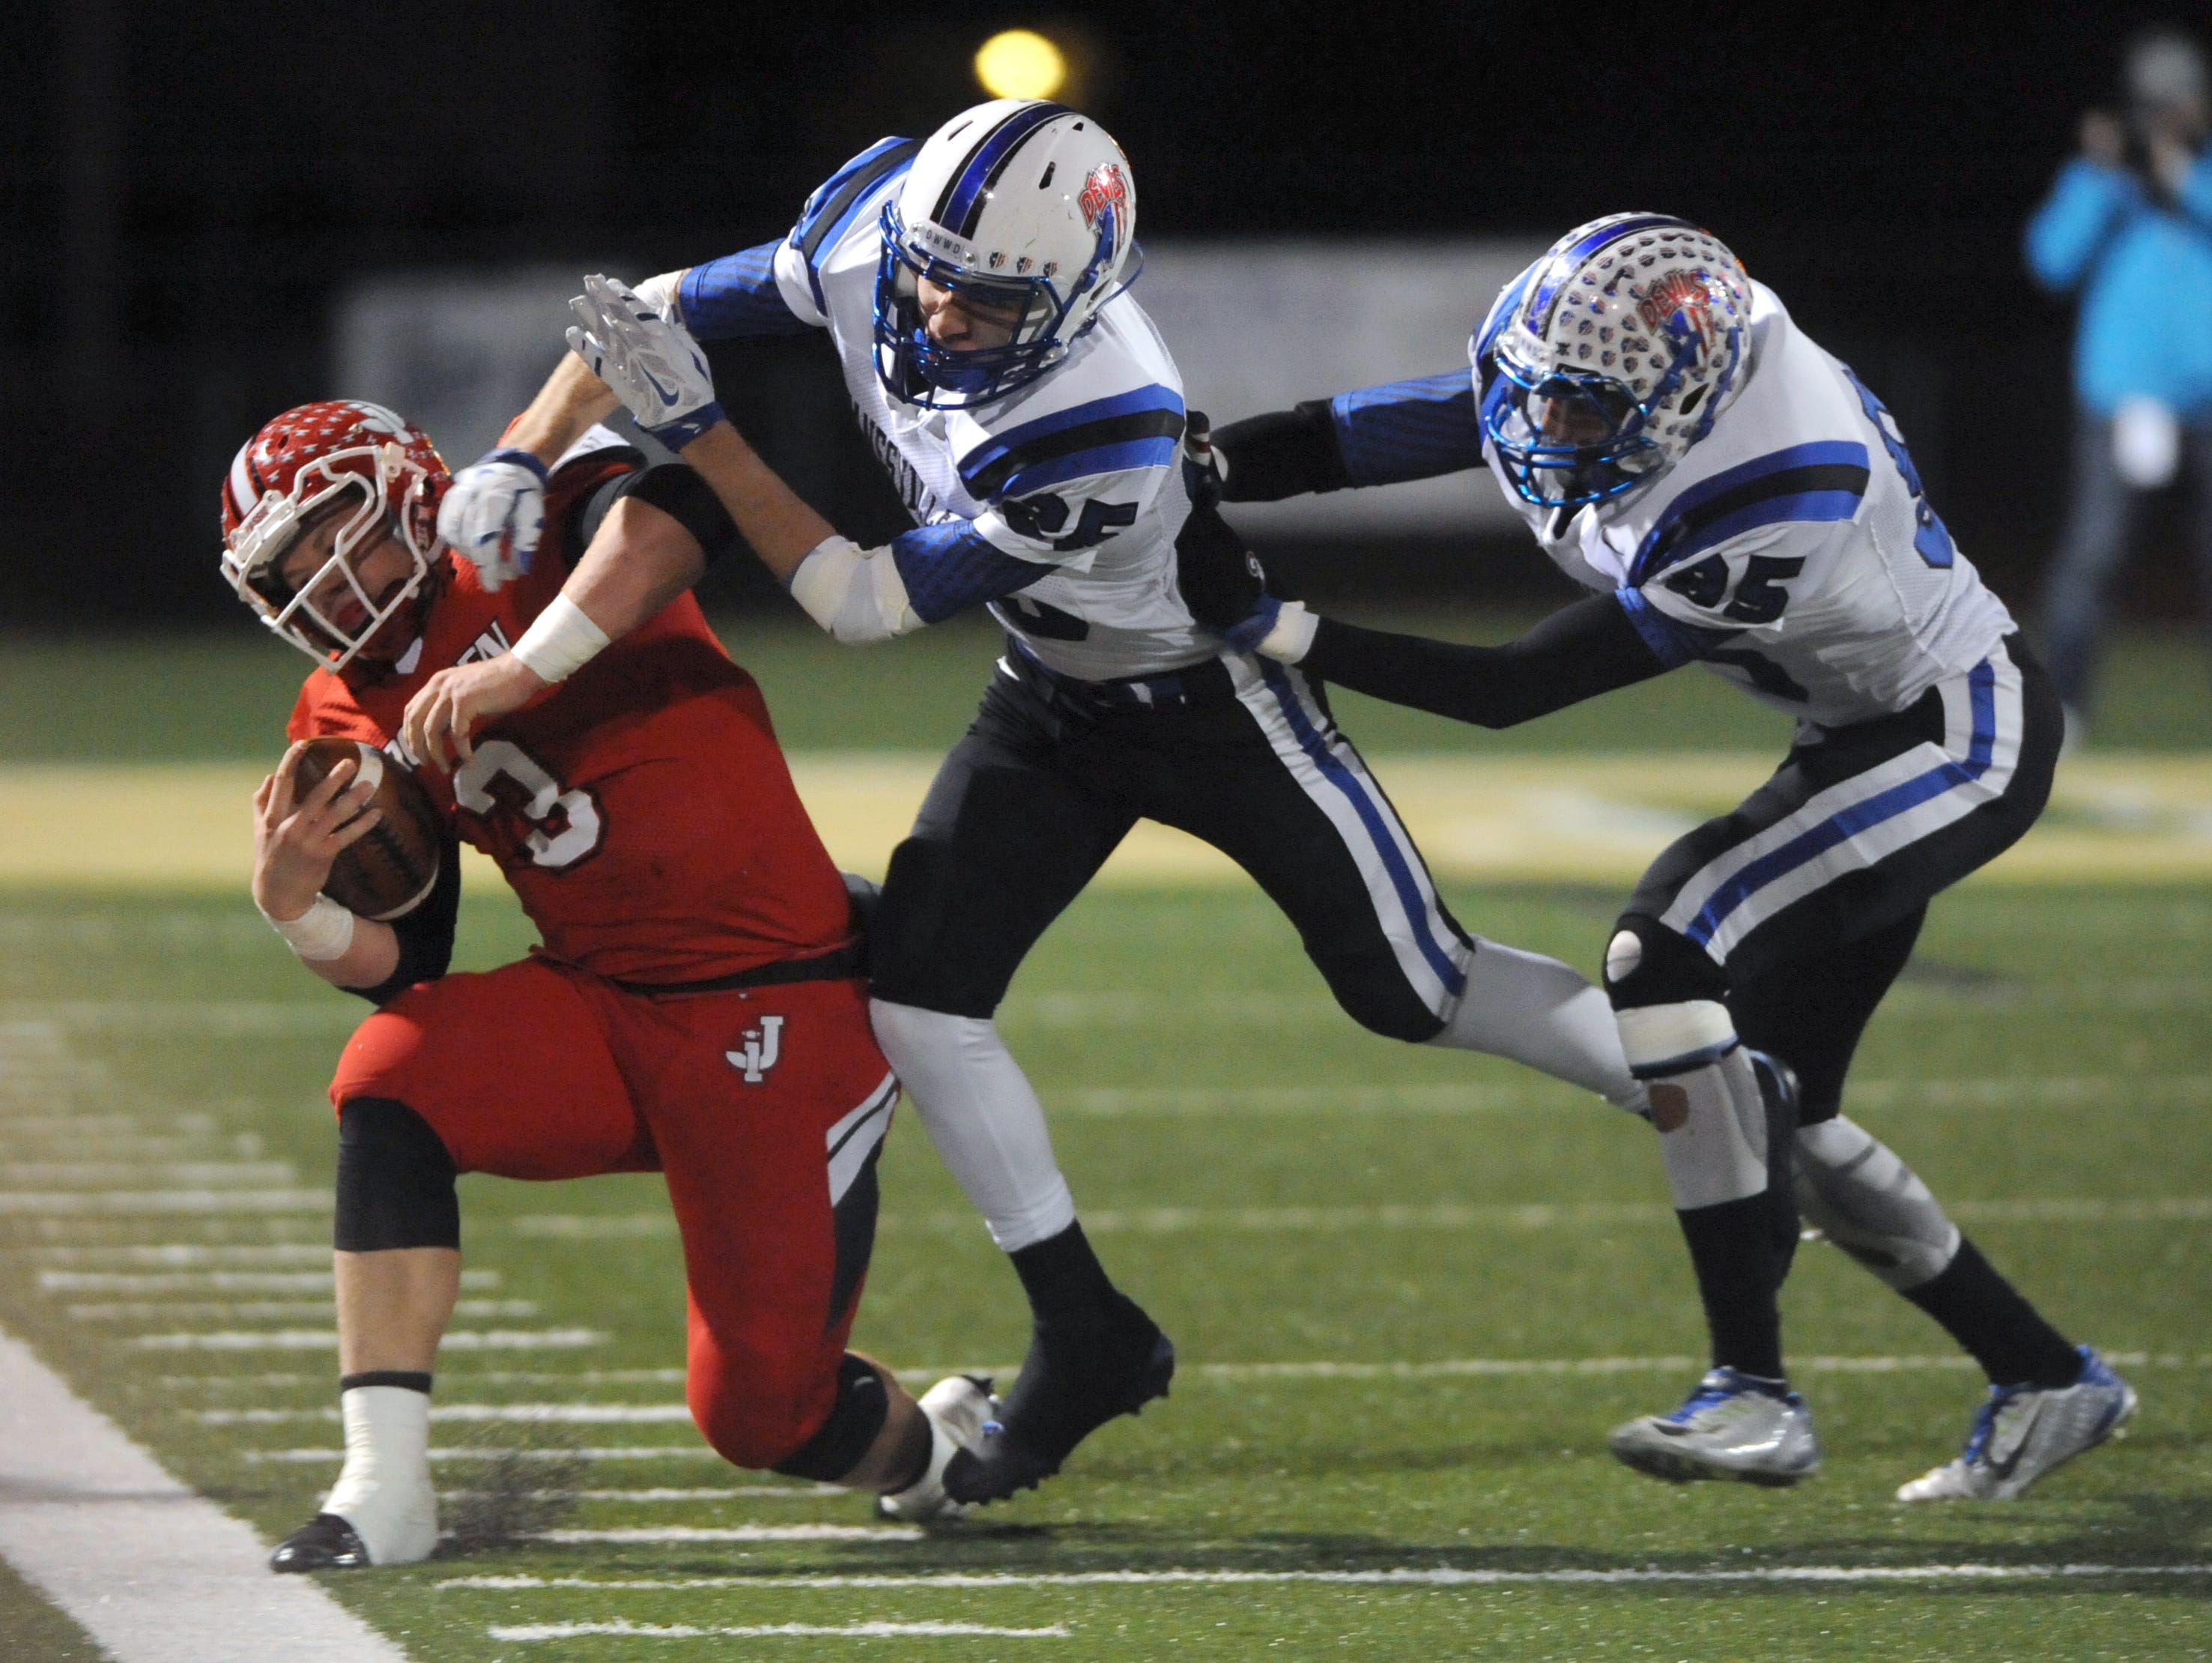 Zanesville's Dominic Stuchell and Javier Madinger-Rush knock Jackson's Hunter Sexton out of bounds Friday during the Blue Devils 38-21 regional finals victory in The Plains.